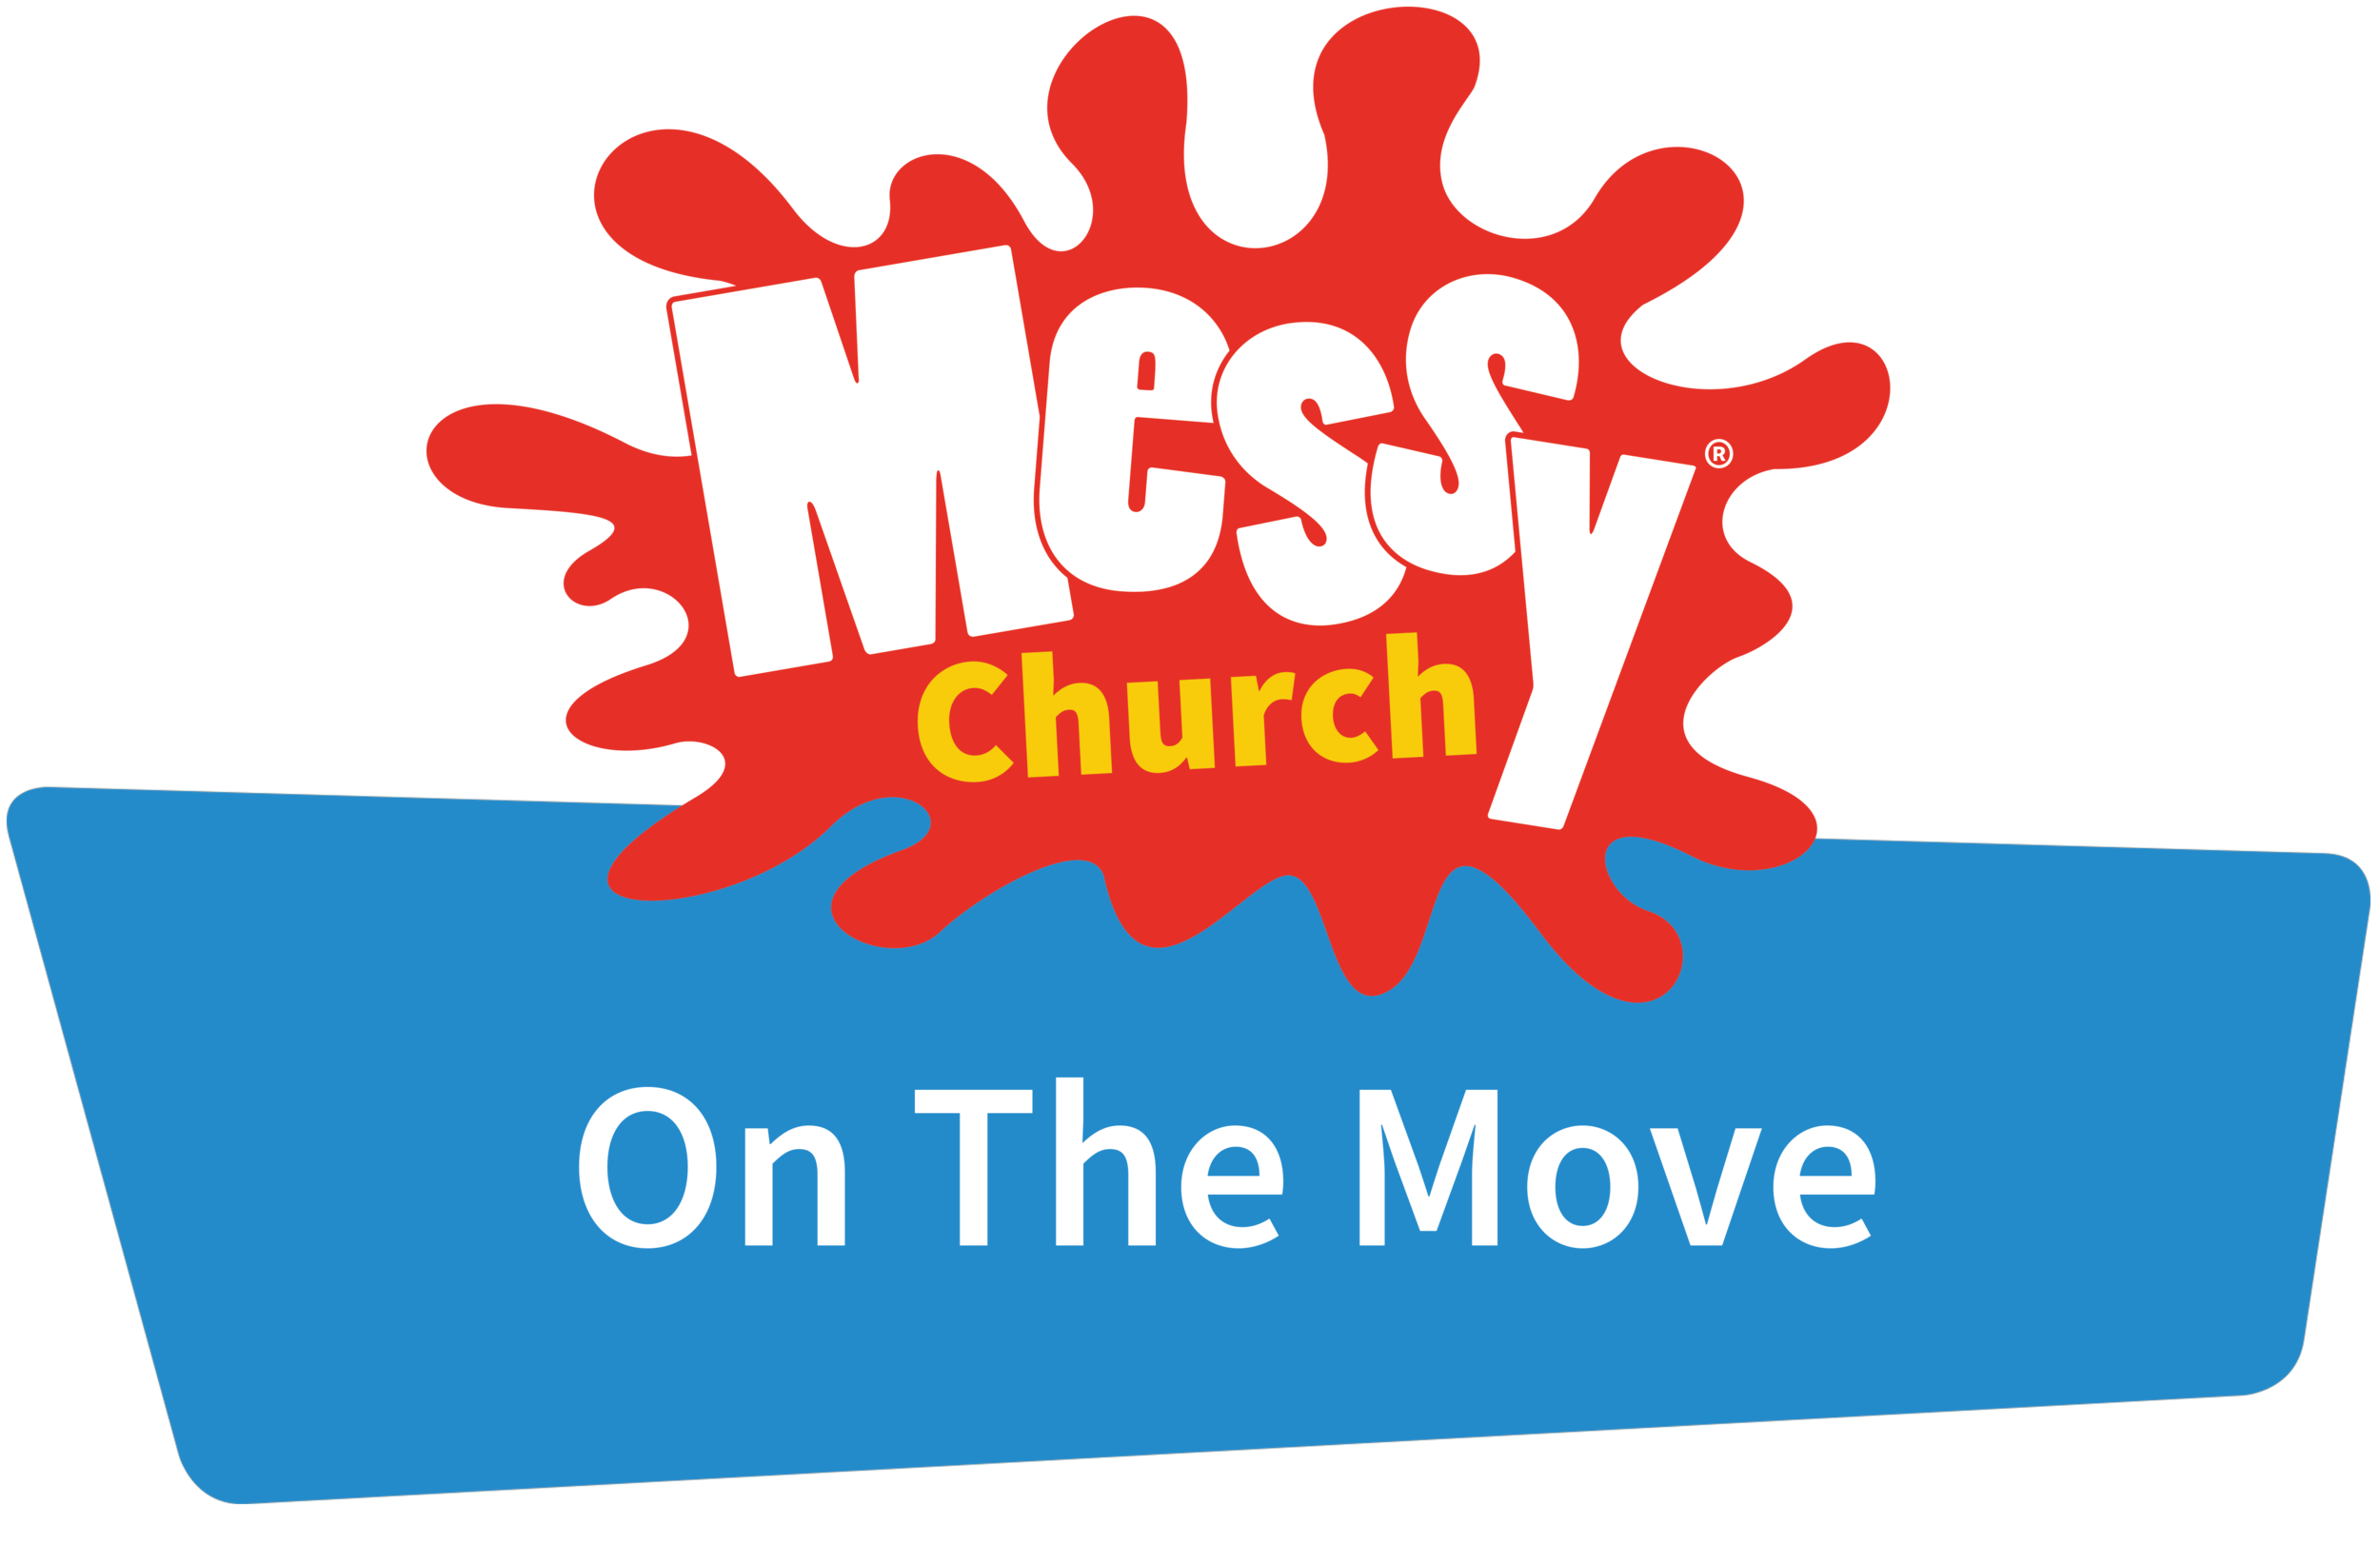 Messy_Church_On The Move®.png